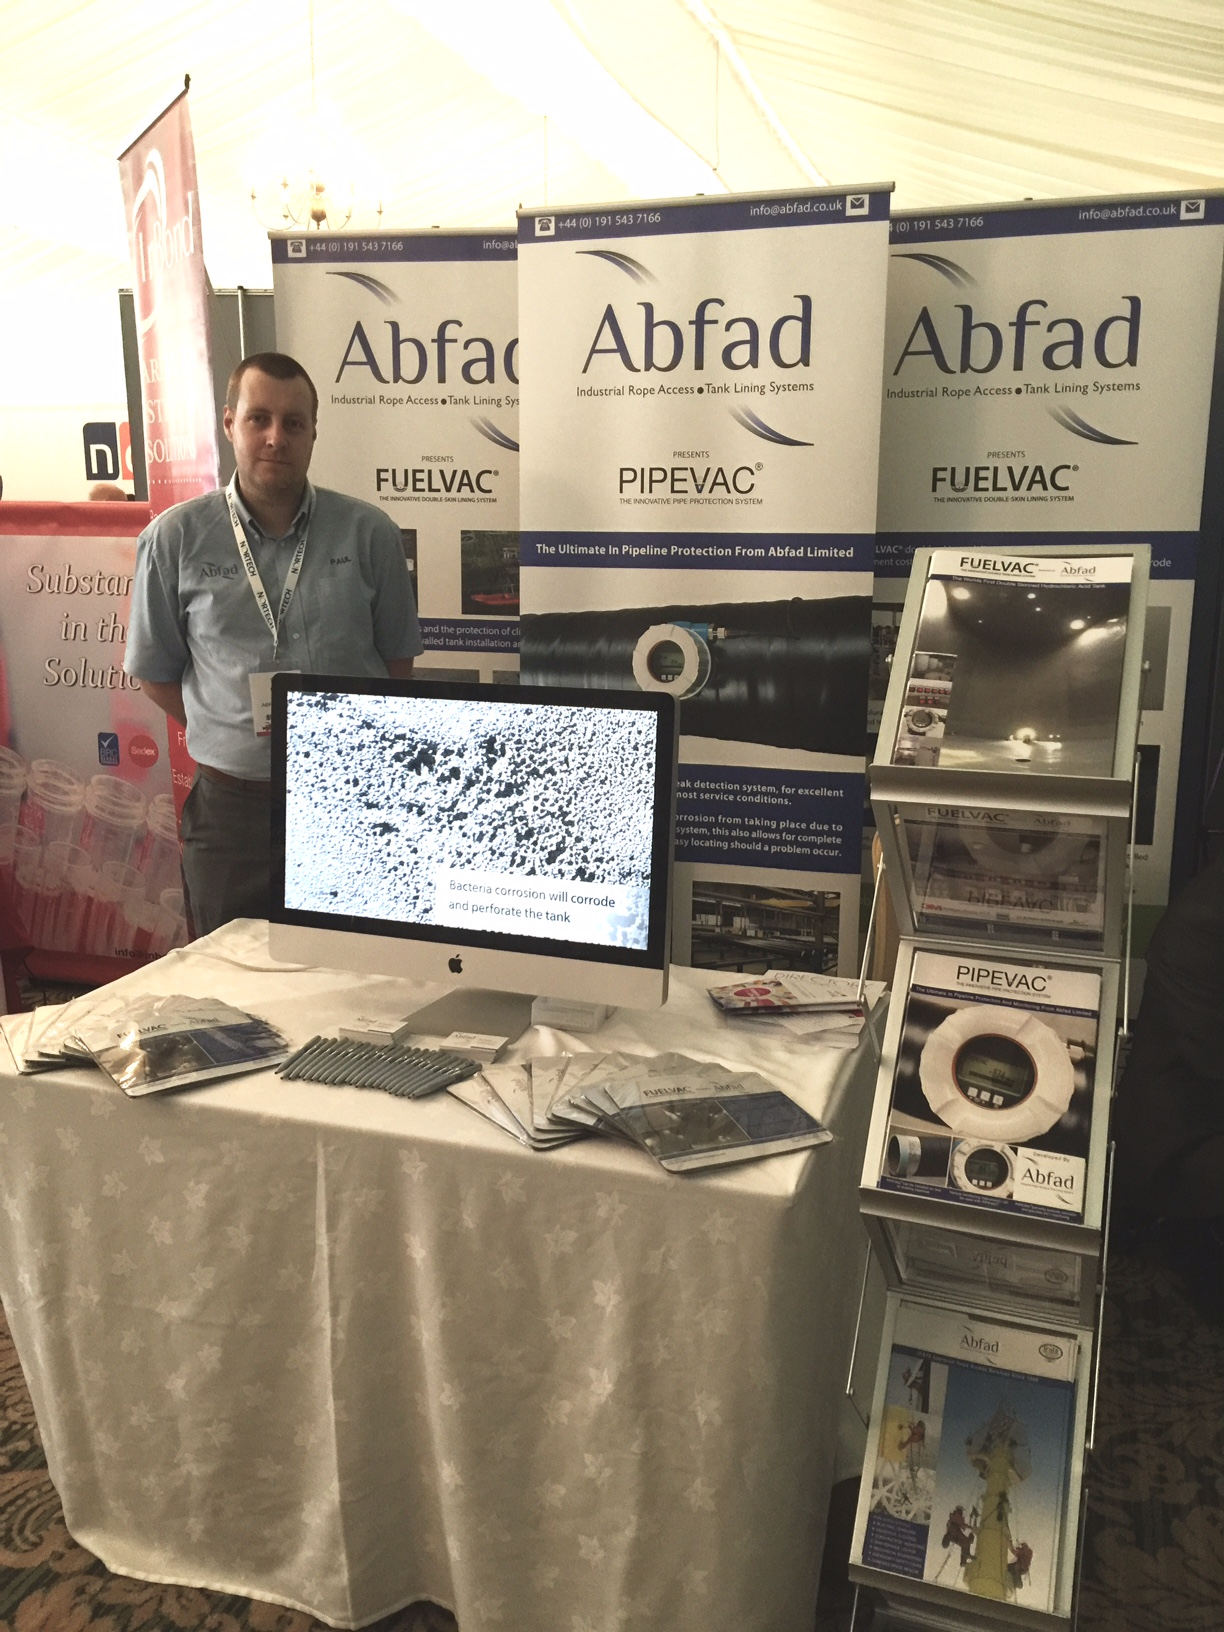 Abfad's stand at NEPIC Meet The Members 2016